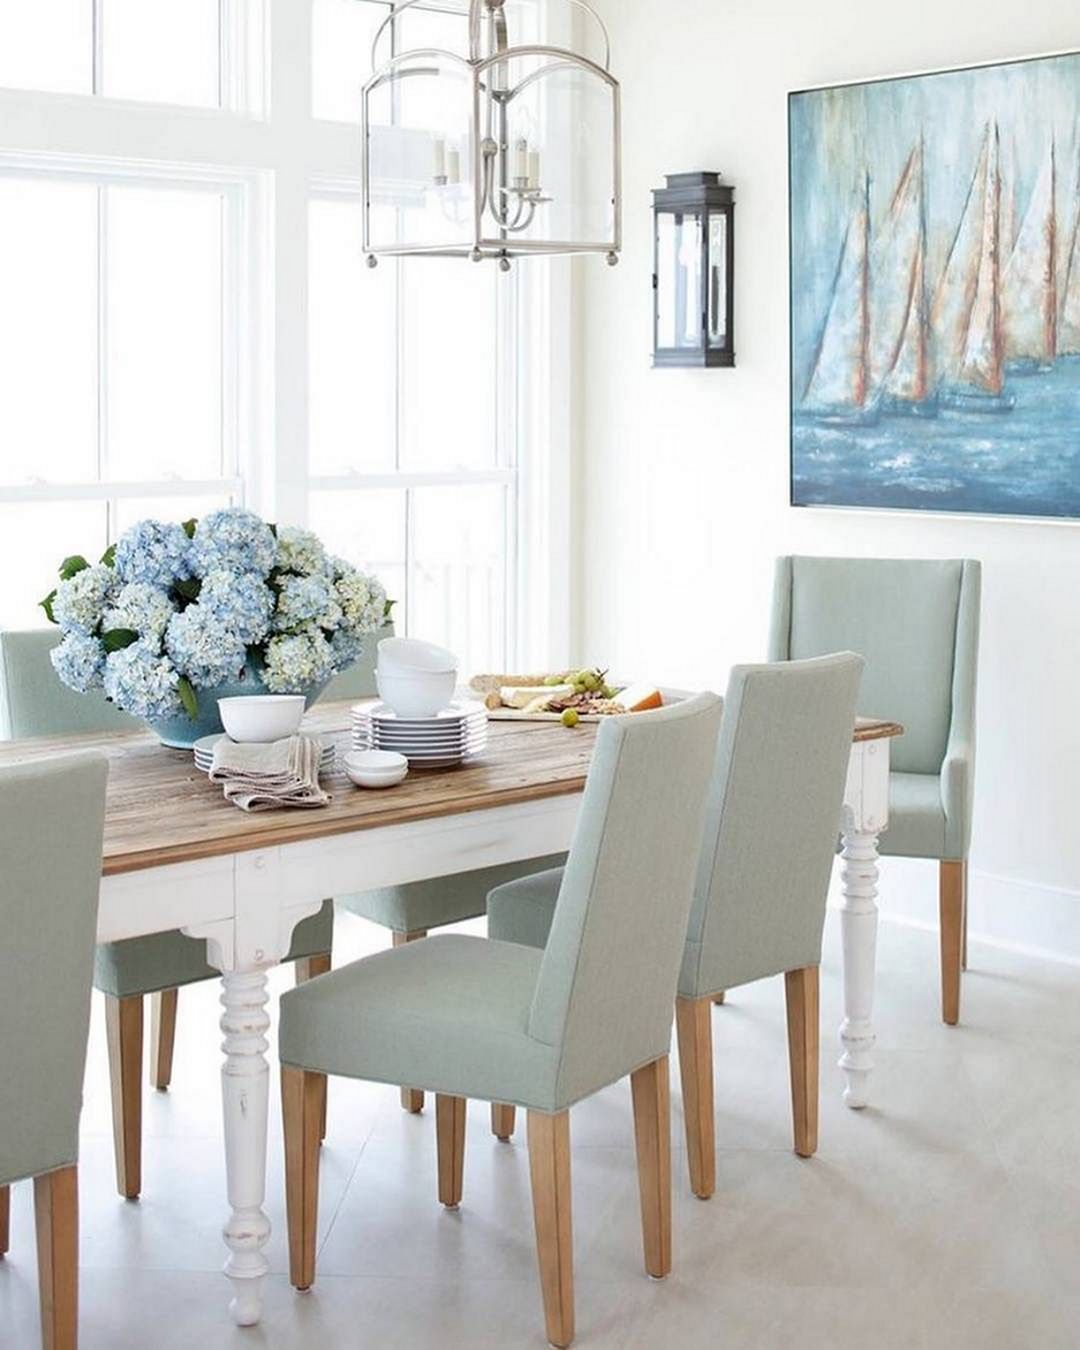 20 Marvelous Coastal Glam Decor For Beautiful Home Decoration Ideas White Dining Room Table Large Dining Room Dining Room Windows